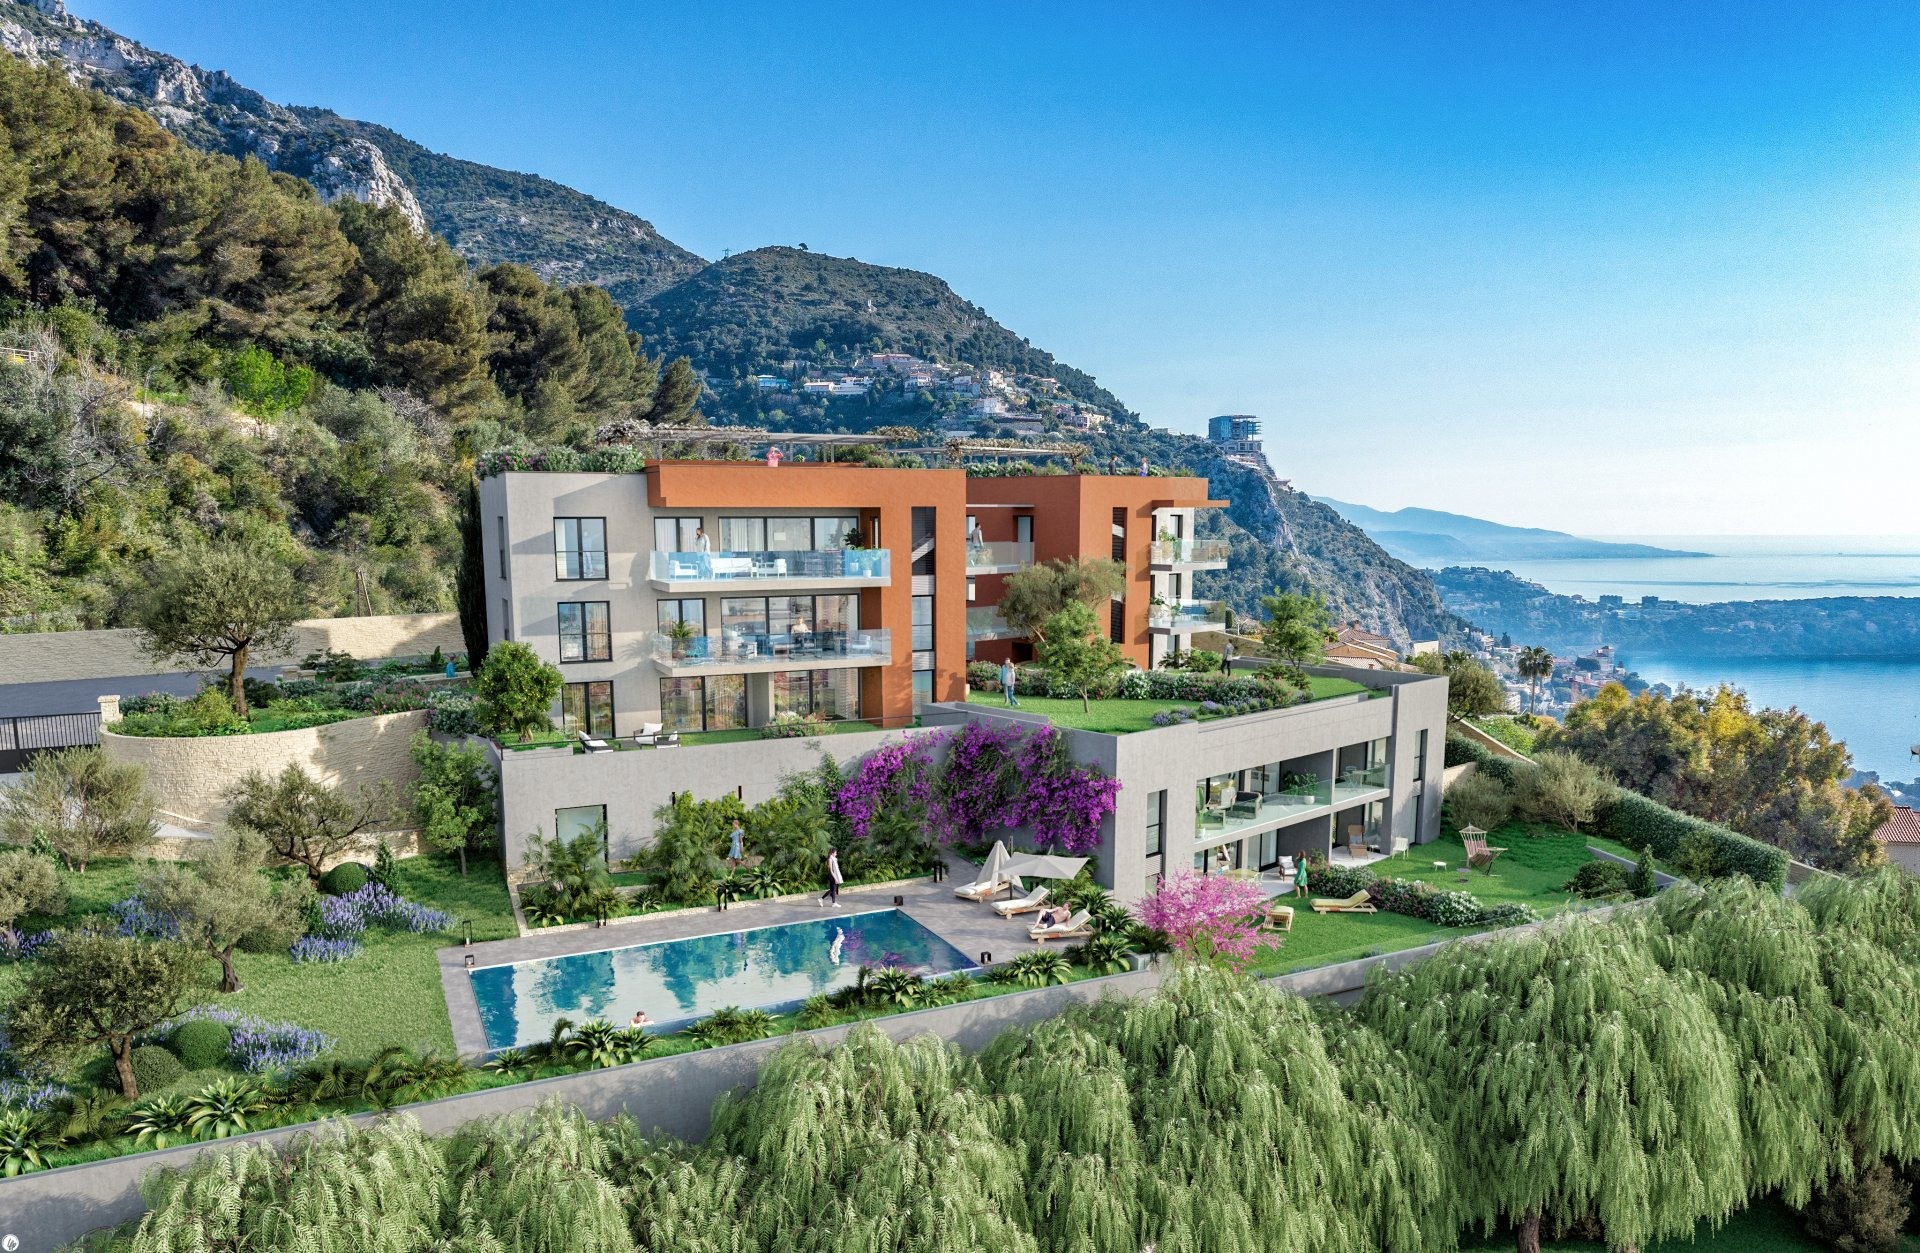 BEAUSOLEIL - French Riviera - Penthouse with panoramic sea view - large terrace - swimming pool